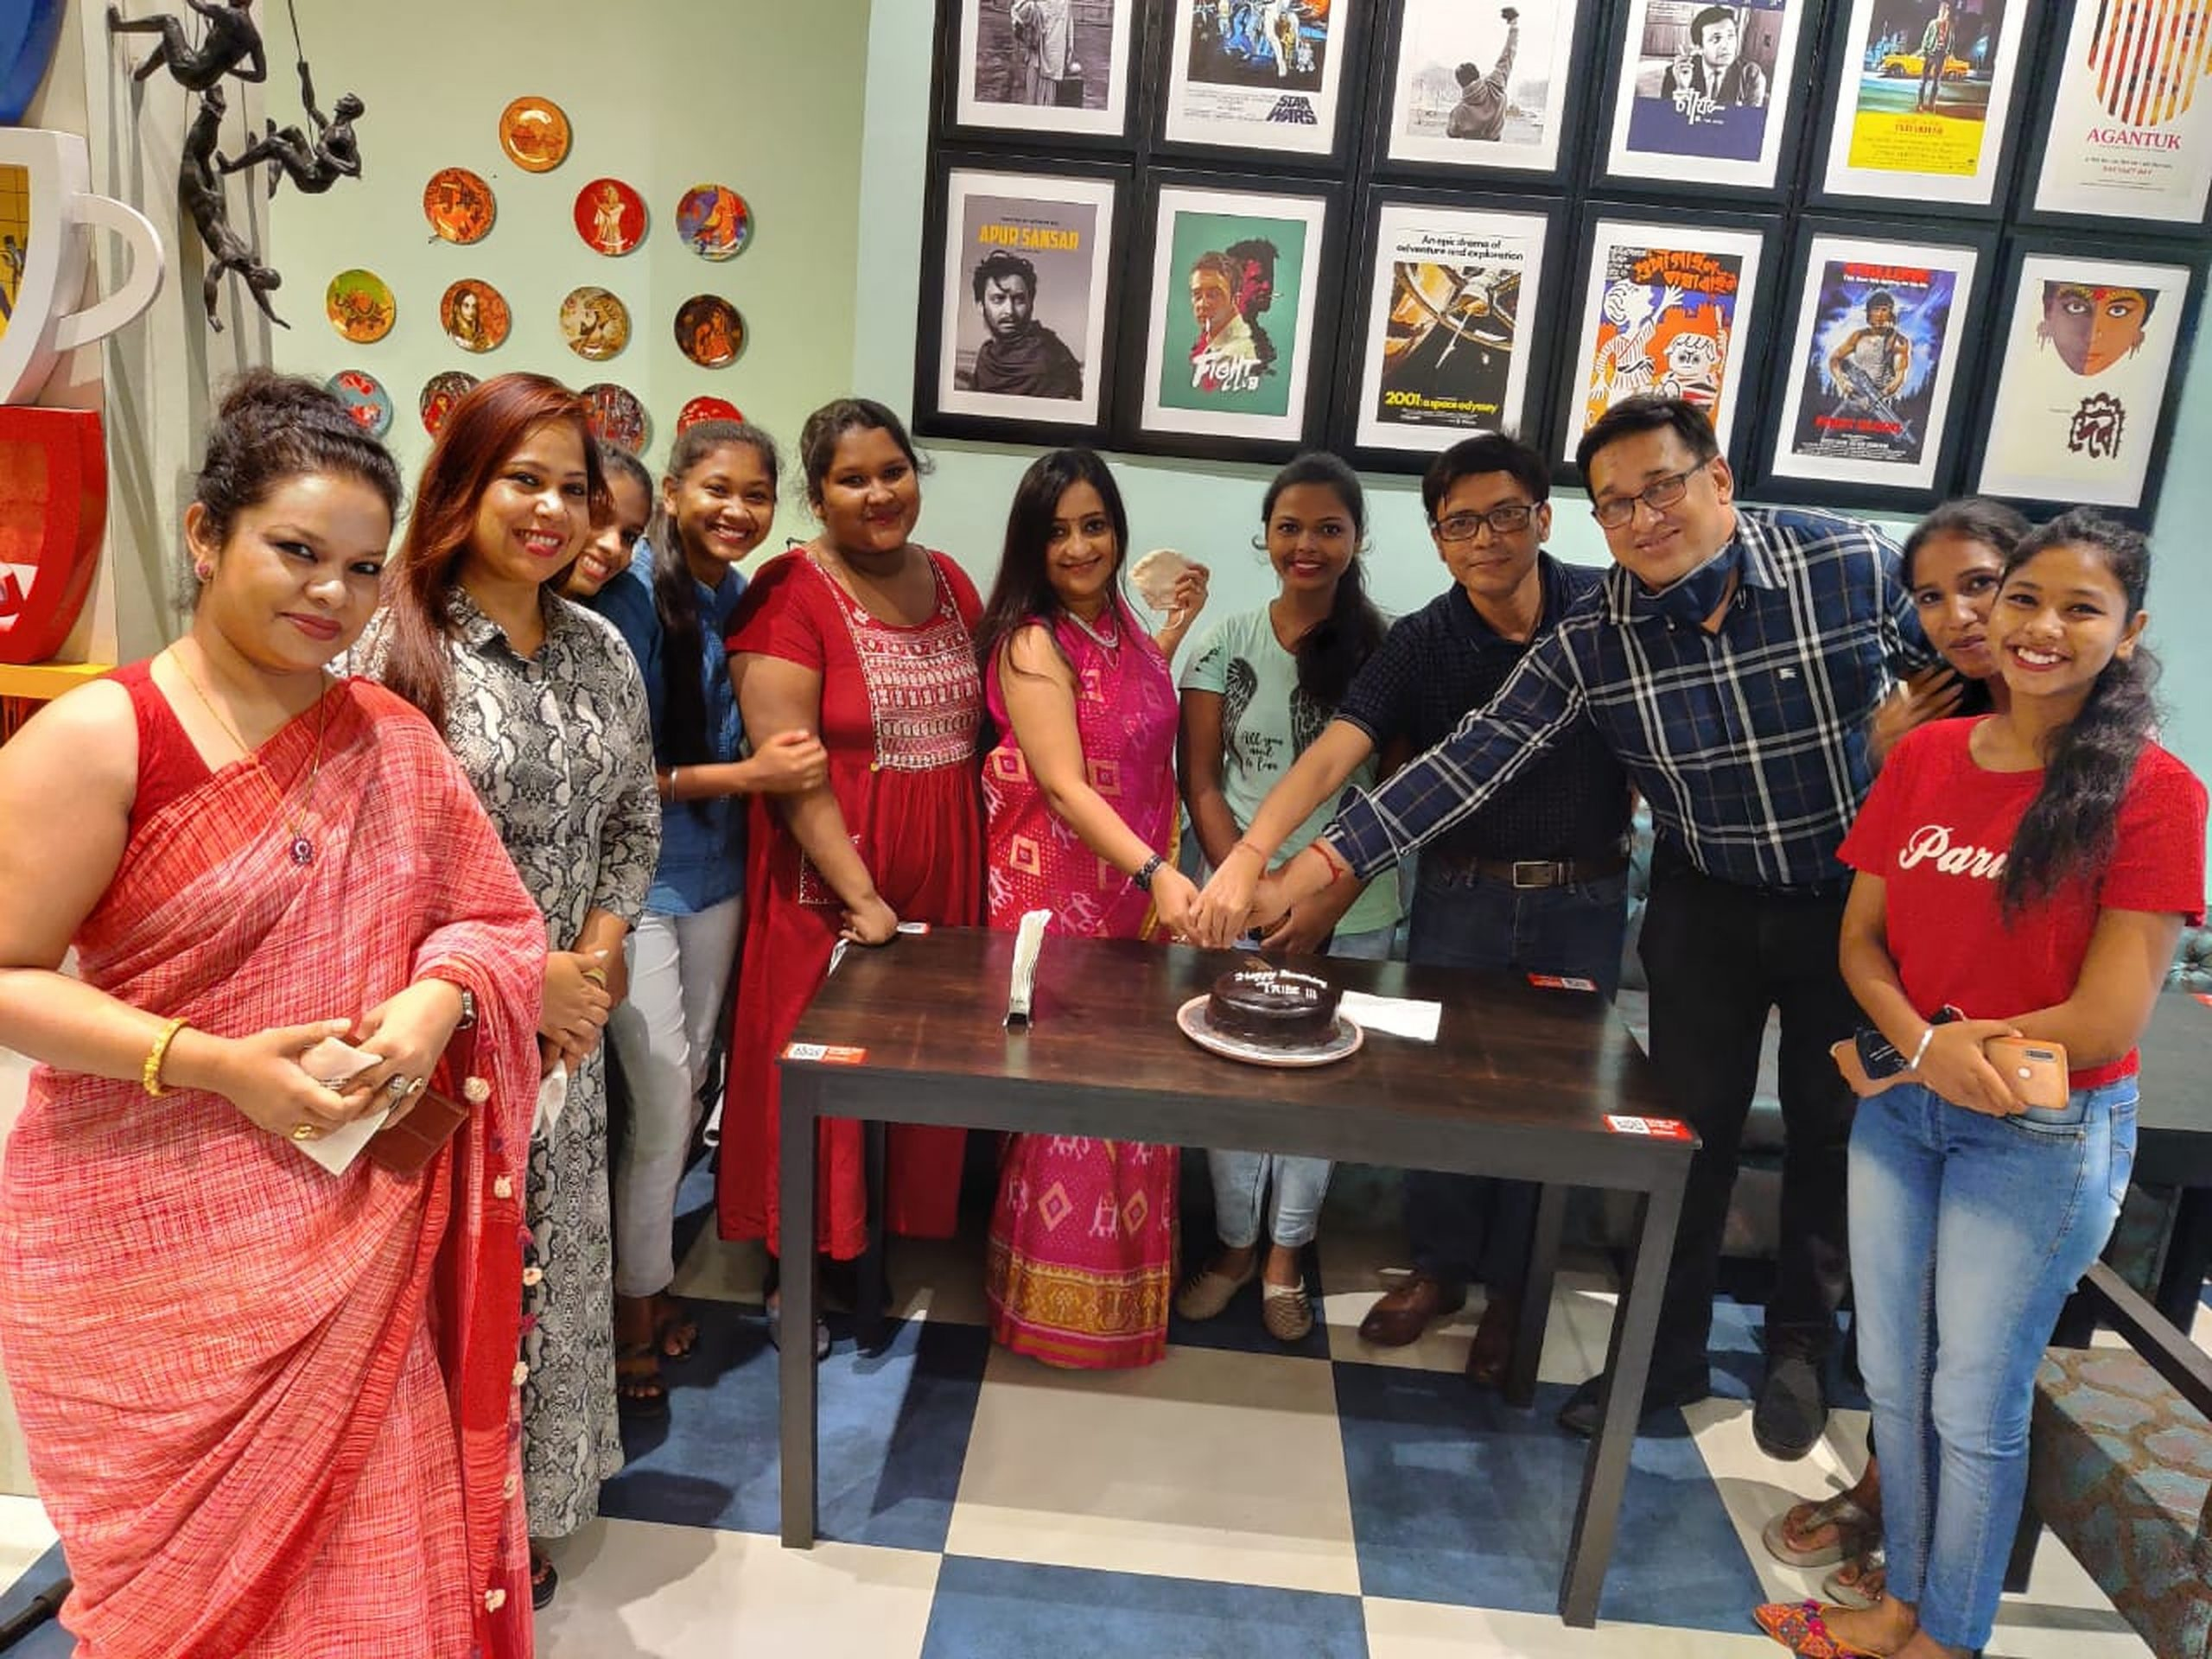 TRIBE celebrates one year of coffee, creativity and conversations